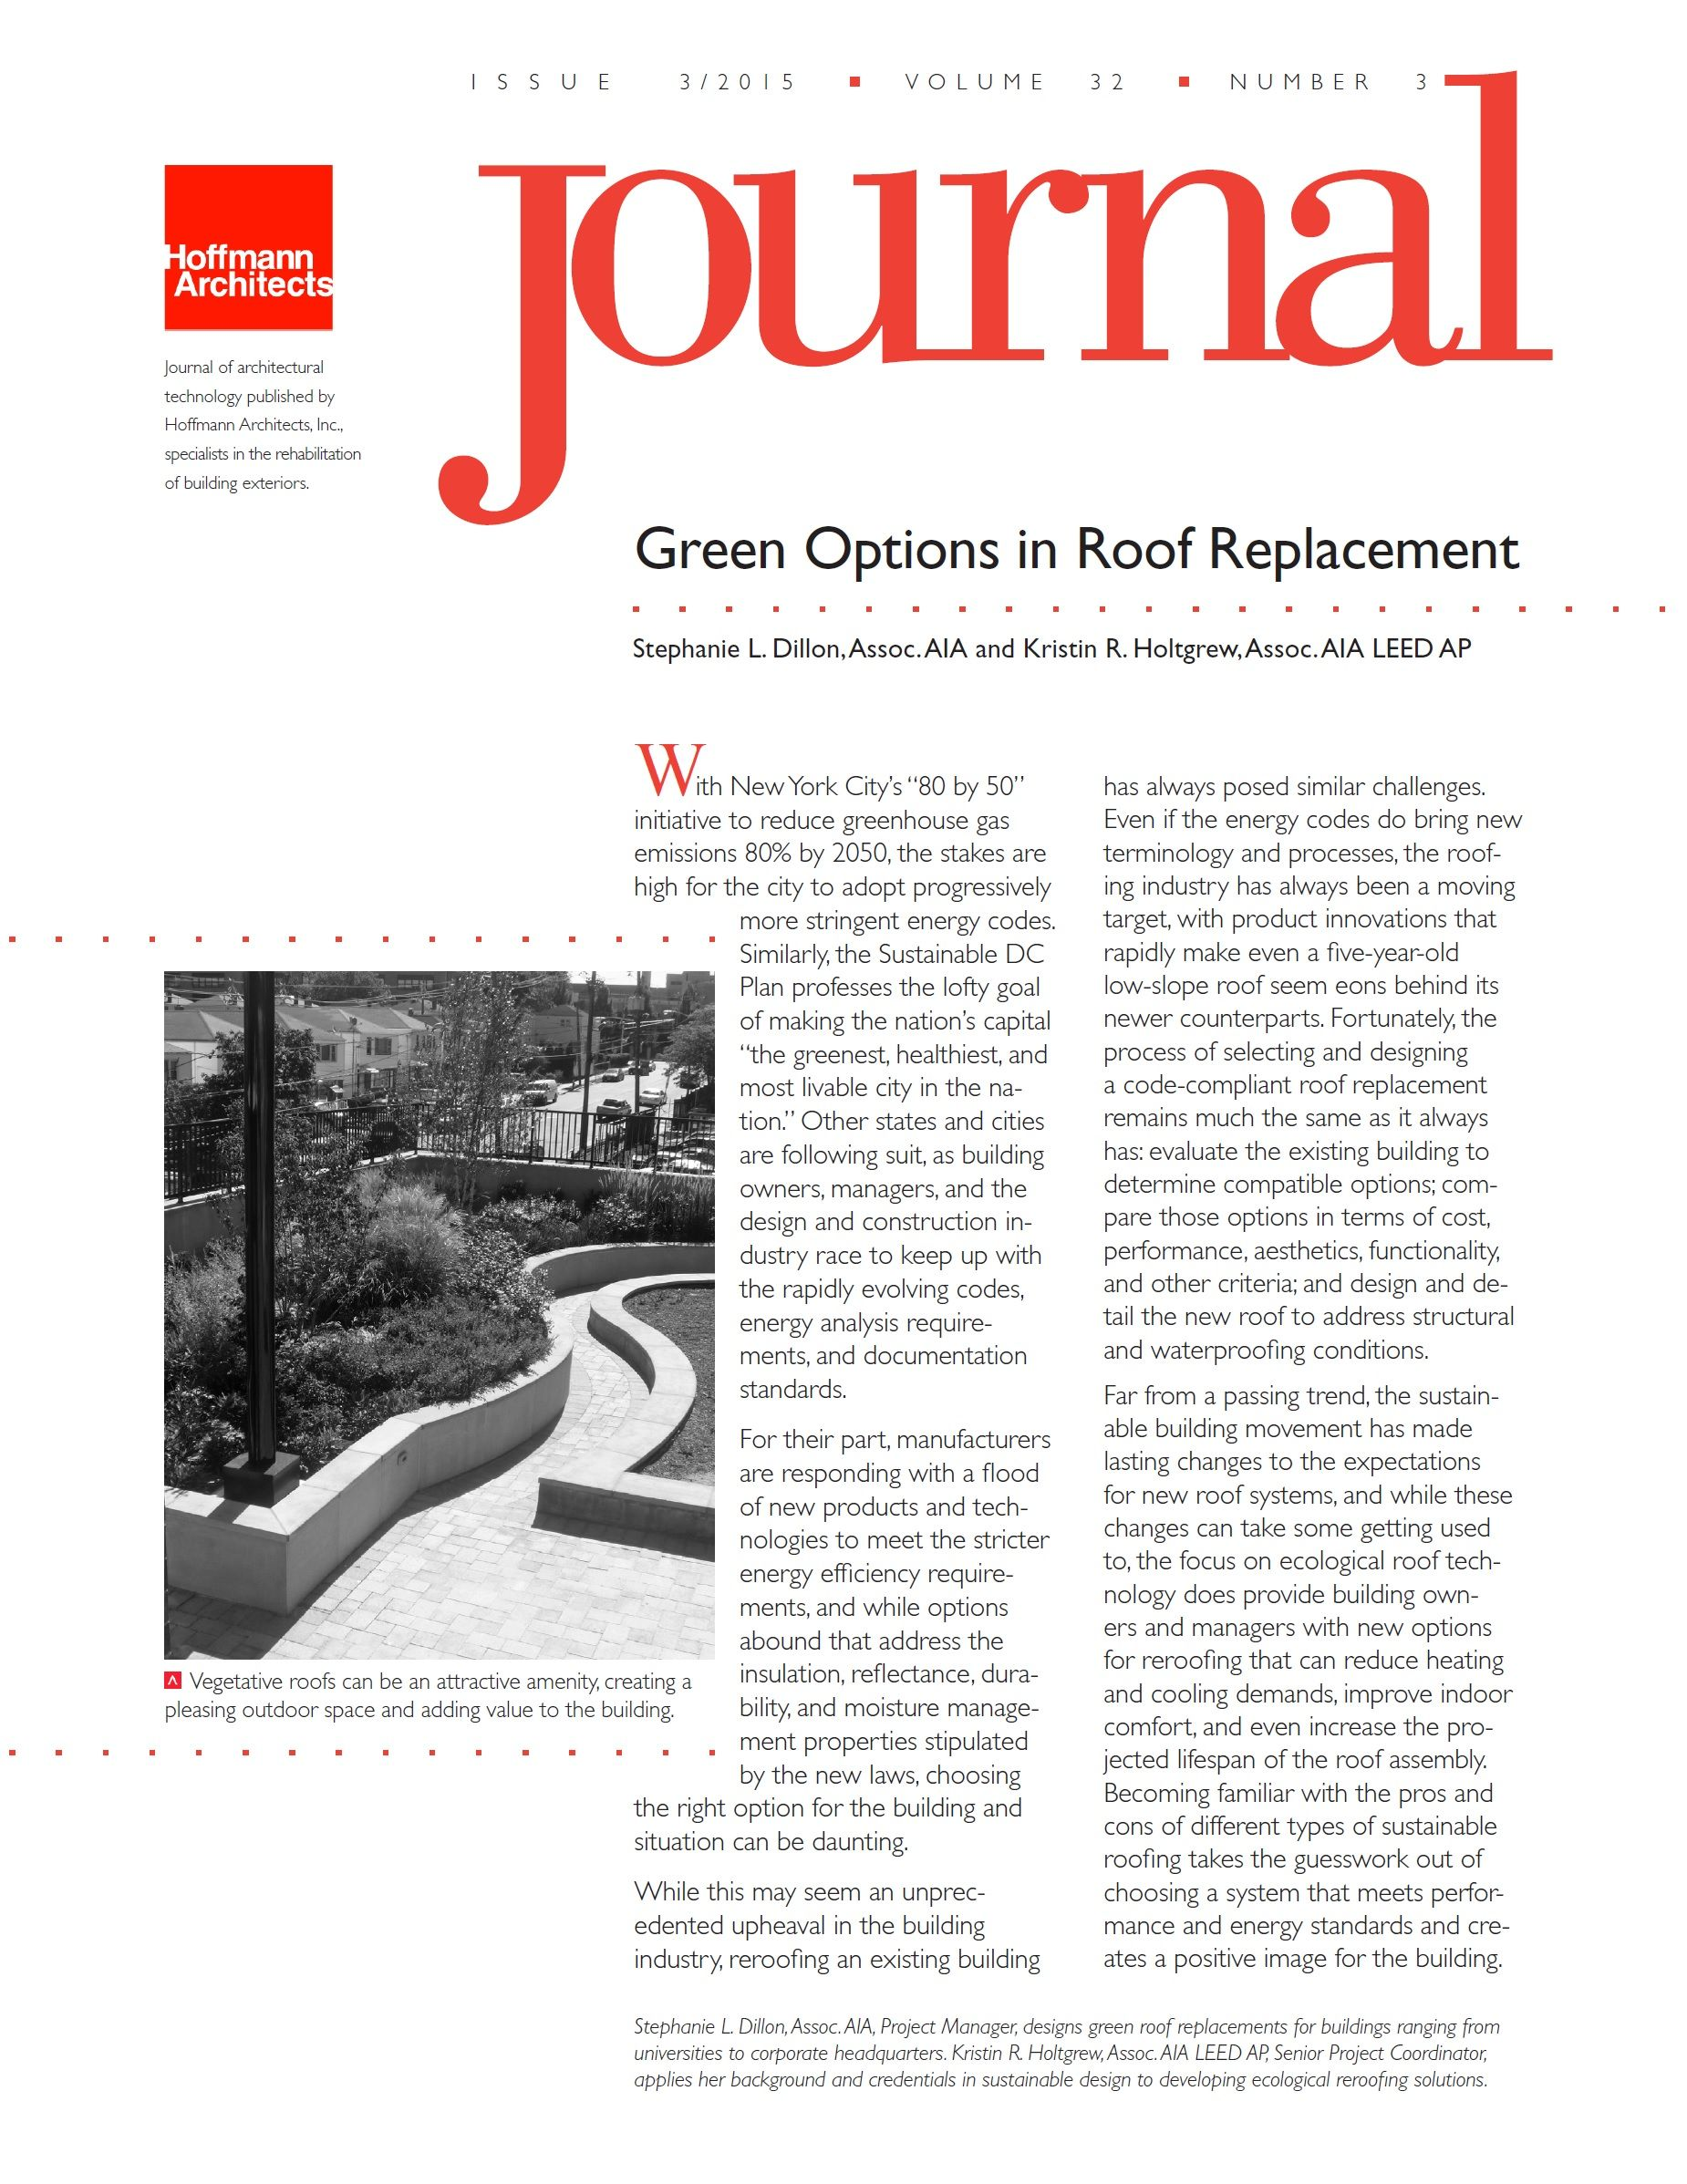 Green Options In Roof Replacement Architects Journal Sustainable Design Cool Roof